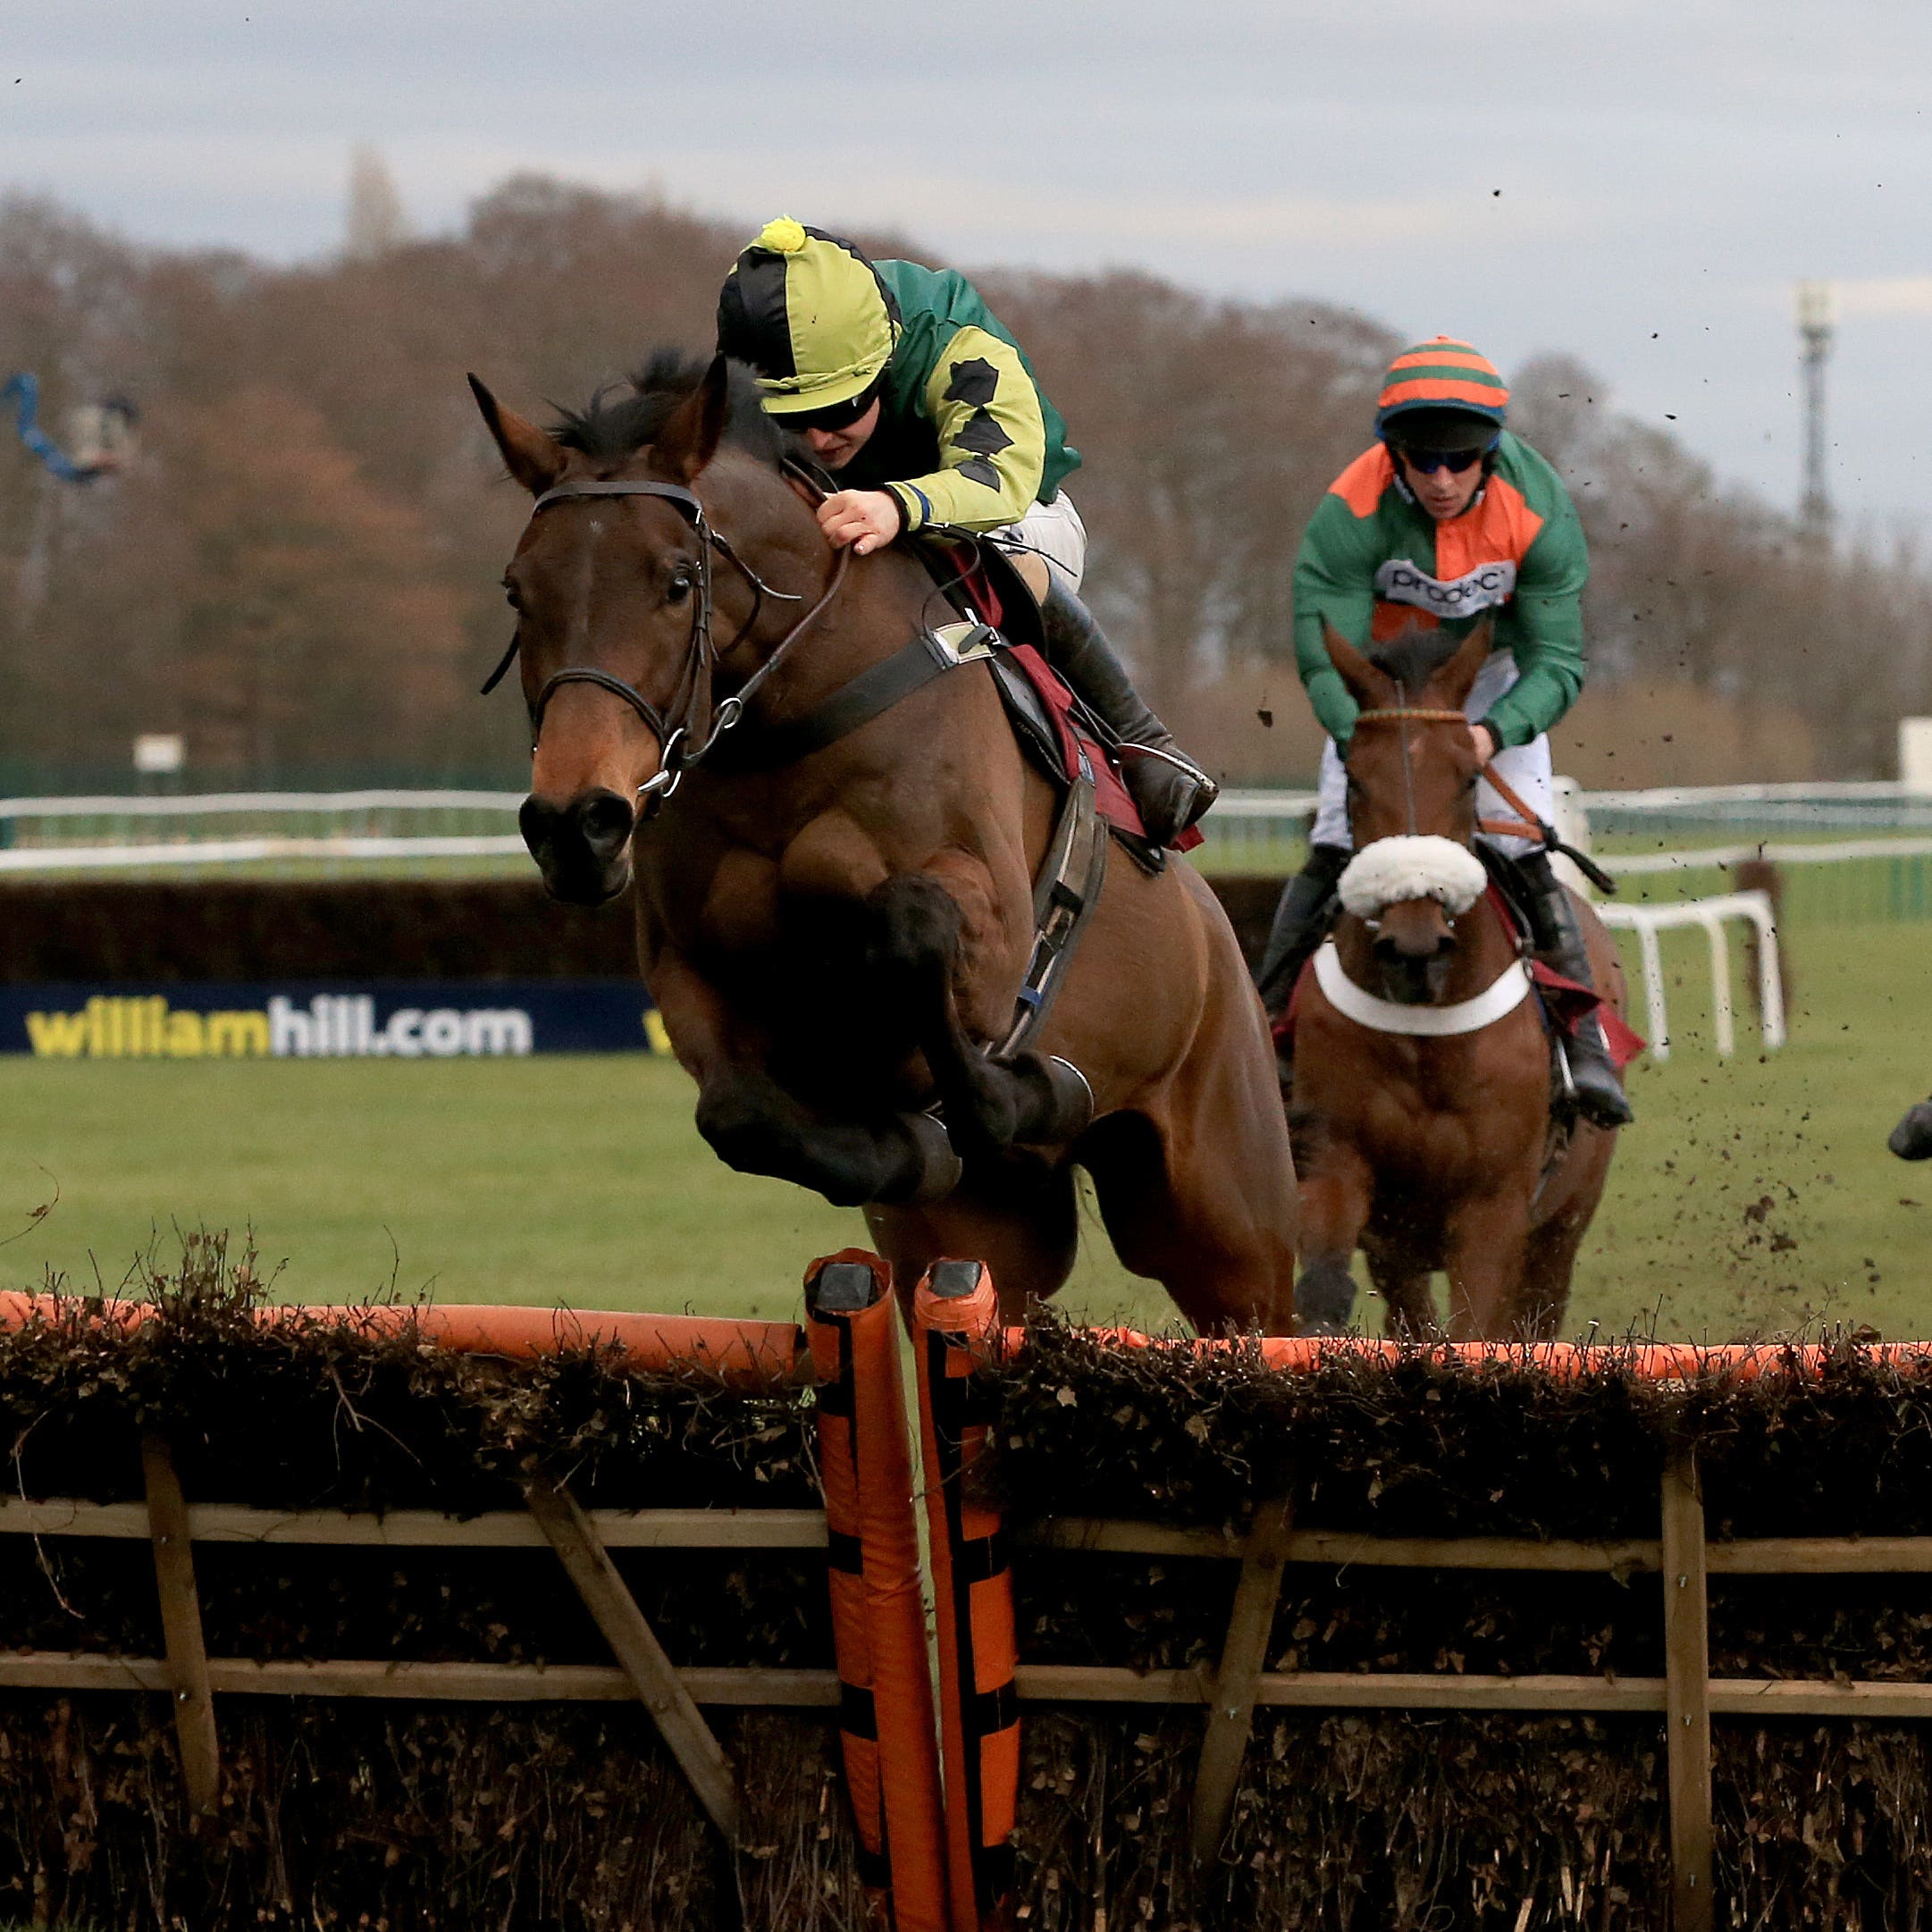 Lisnagar Oscar will try his luck at Aintree